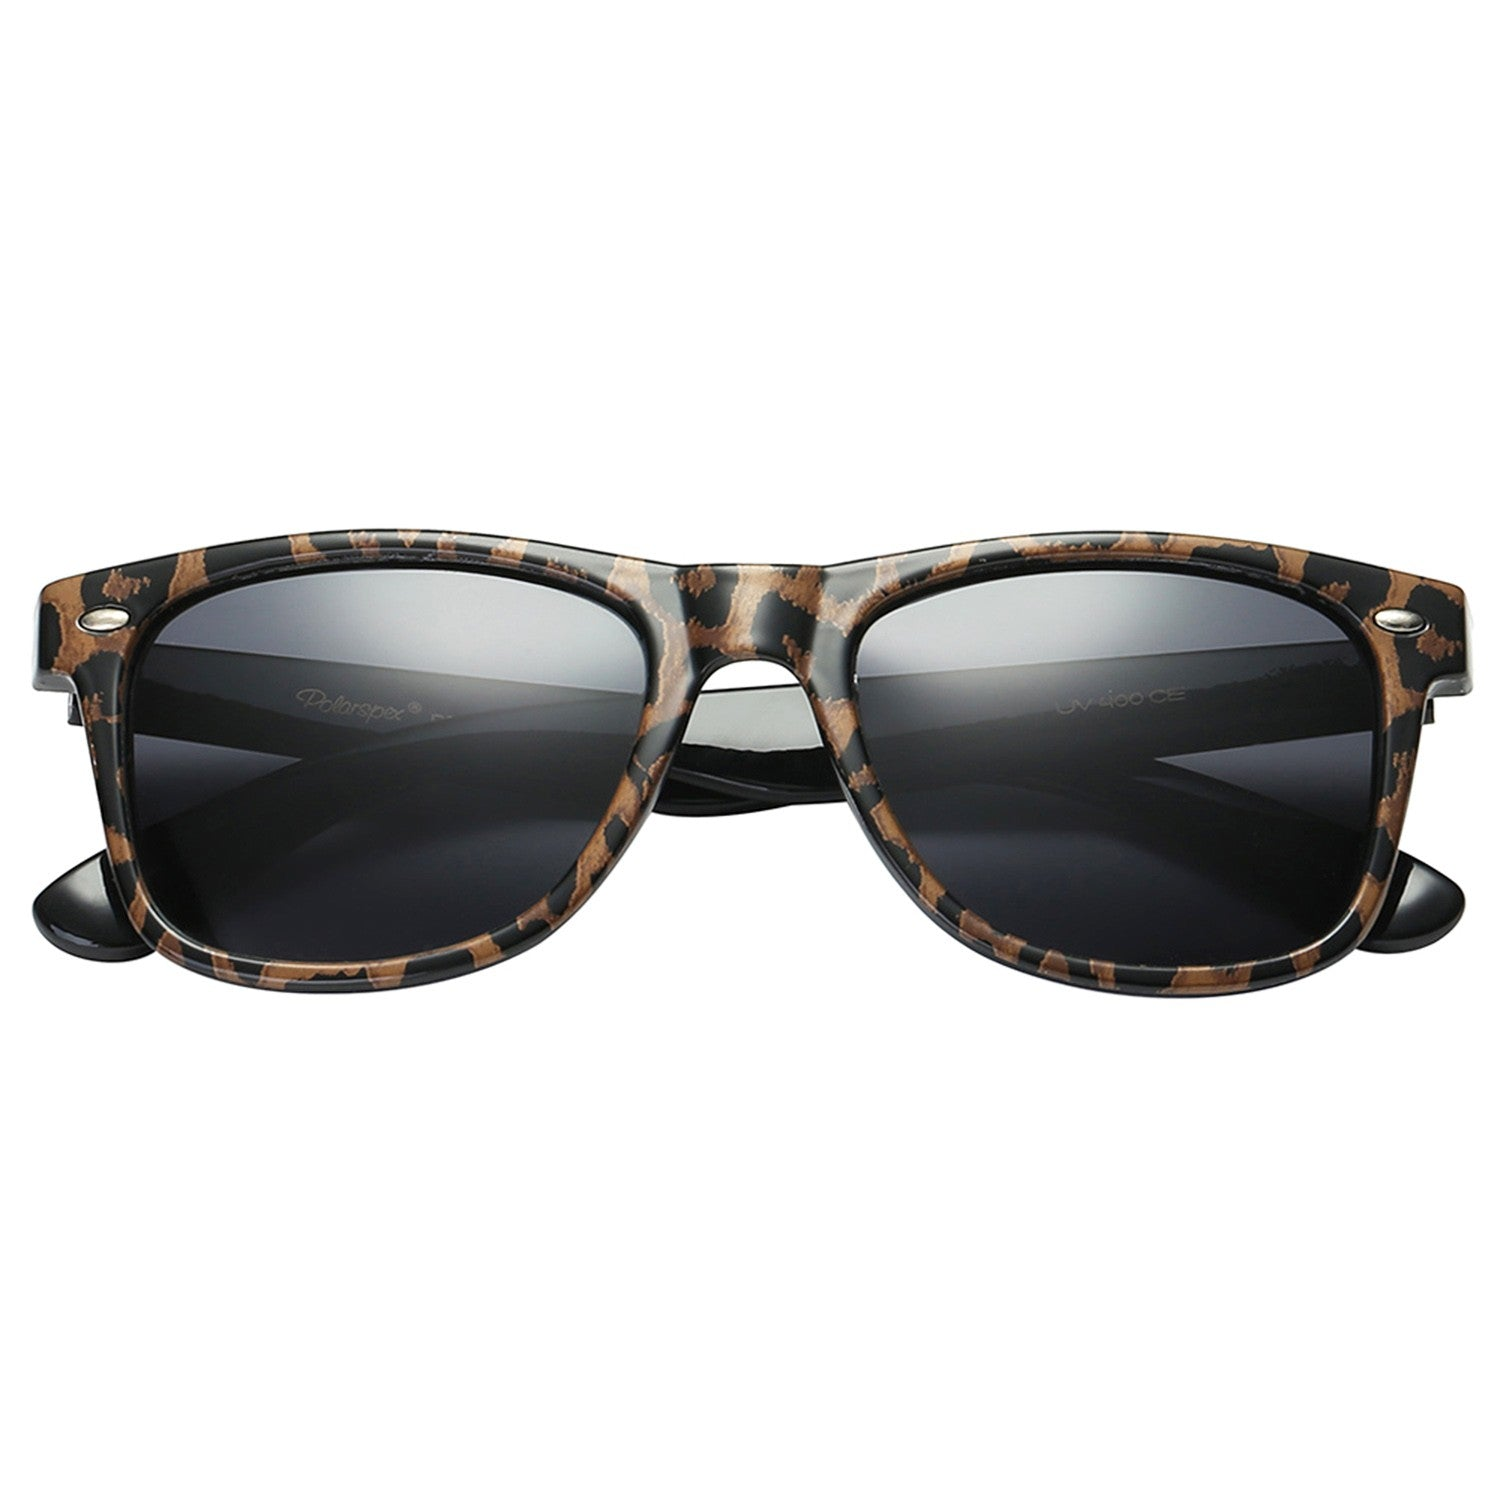 Polarspex Polarized 80's Retro Style Unisex Sunglasses with Leopard Brown Frames and Smoke Lenses